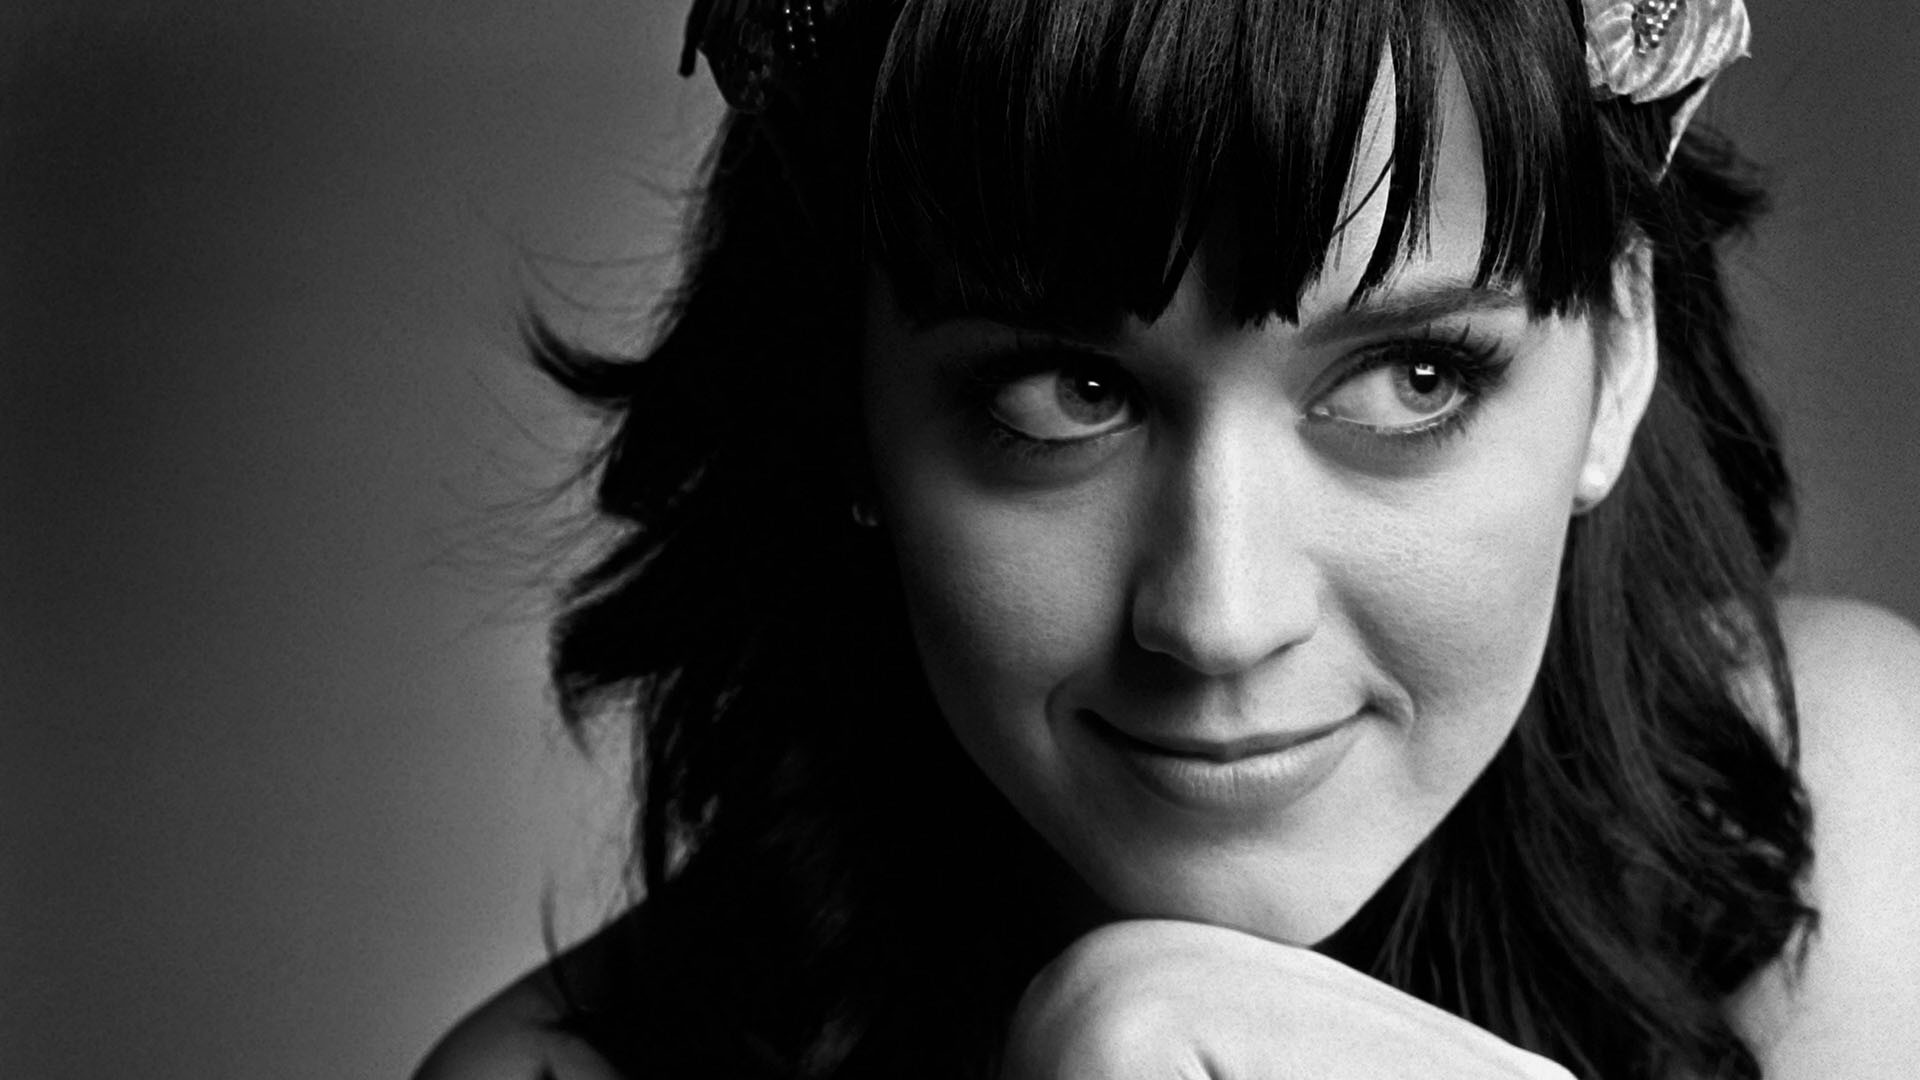 … katy perry, face, smile